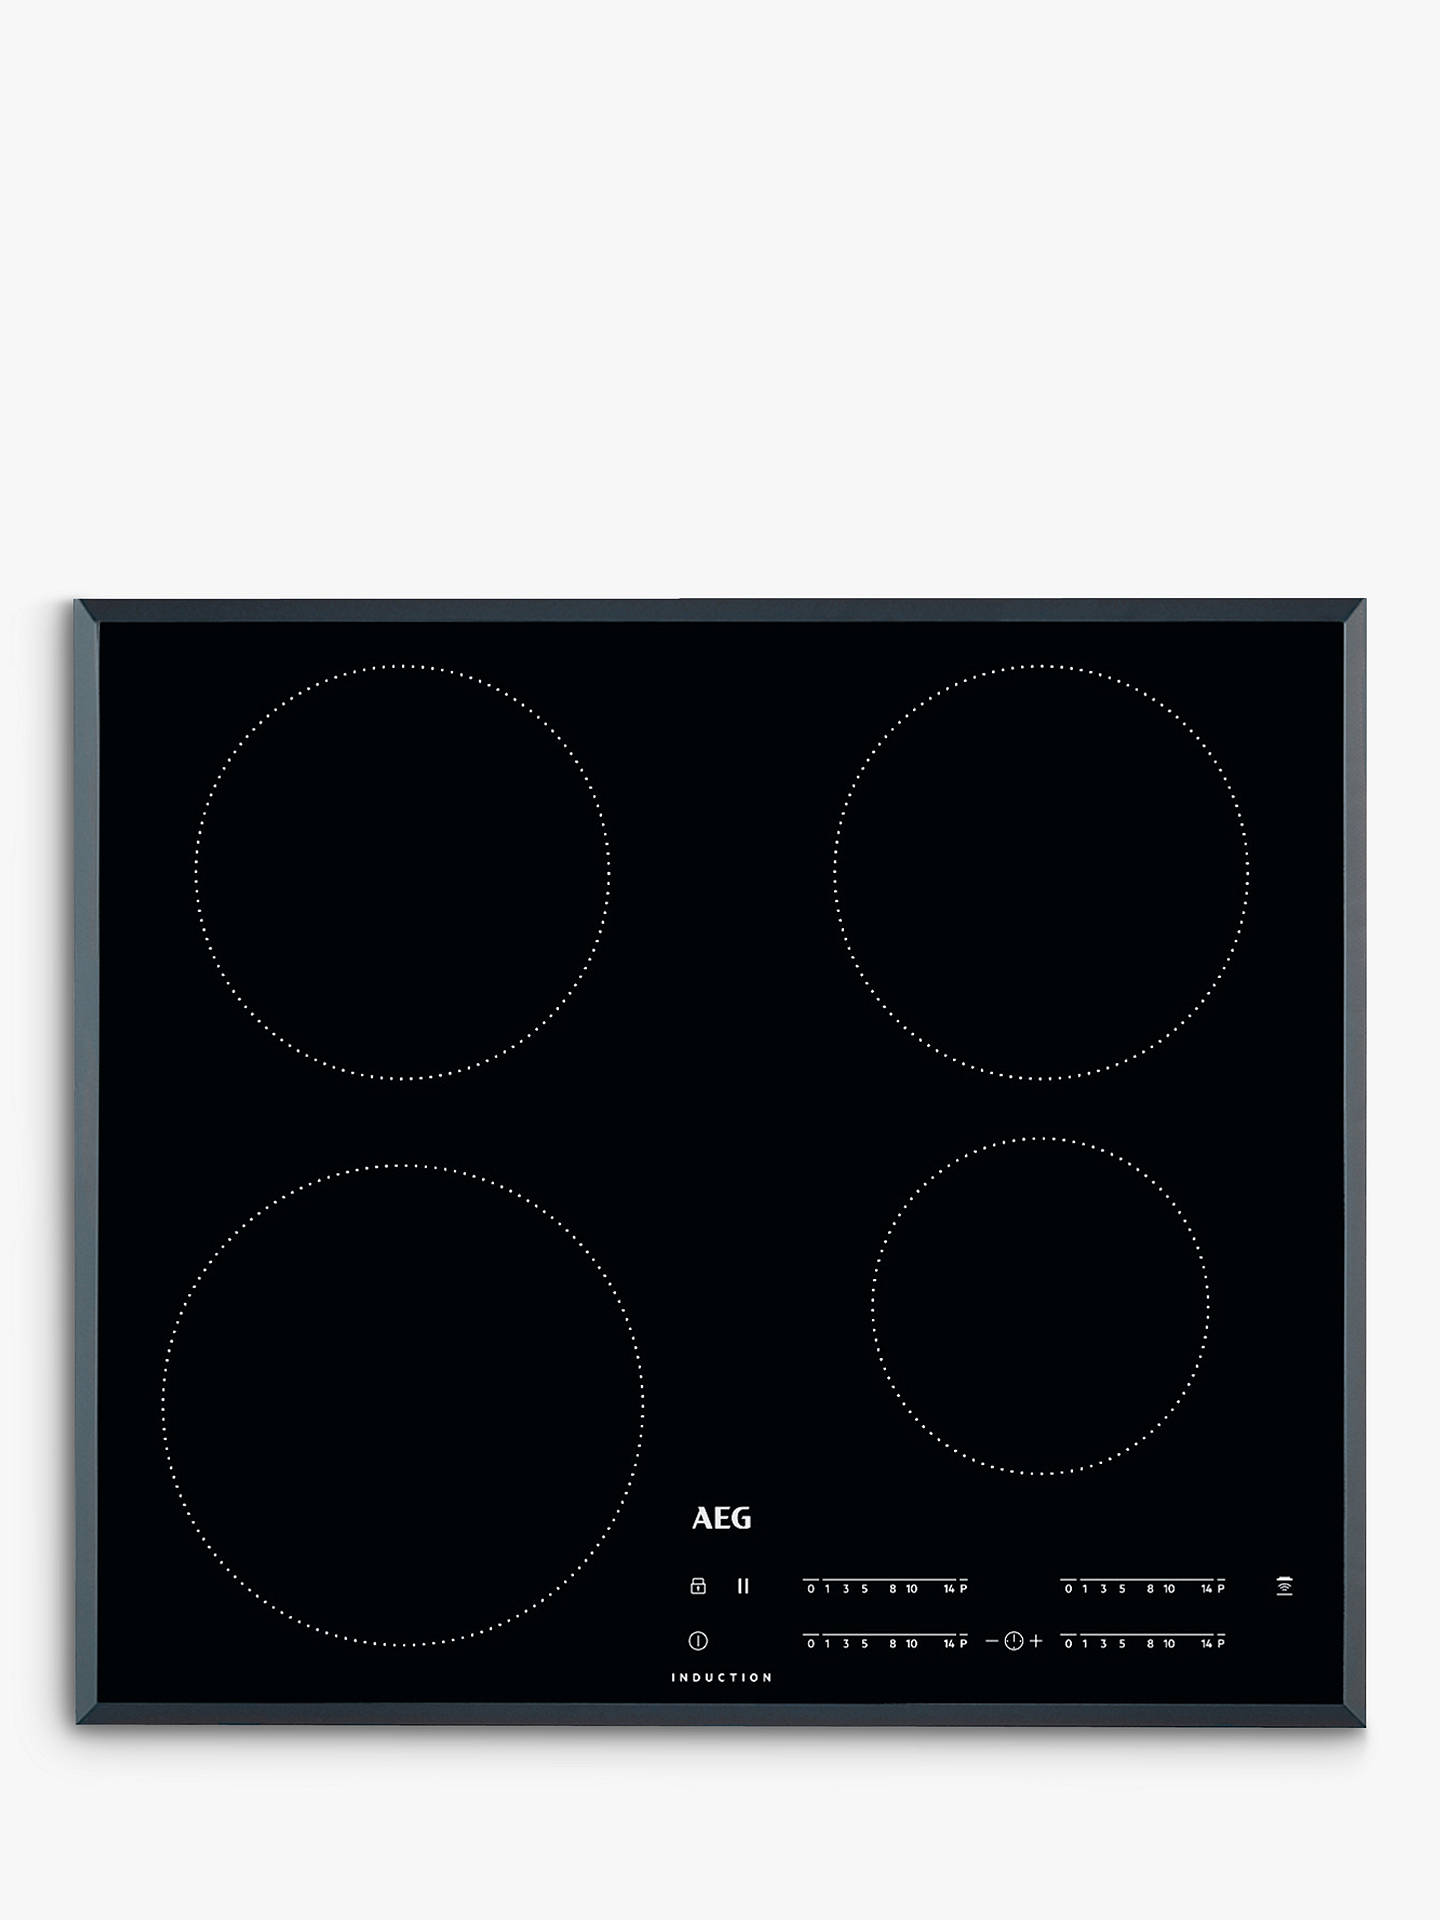 Aeg Ikb64401fb 56cm Induction Hob  Black At John Lewis